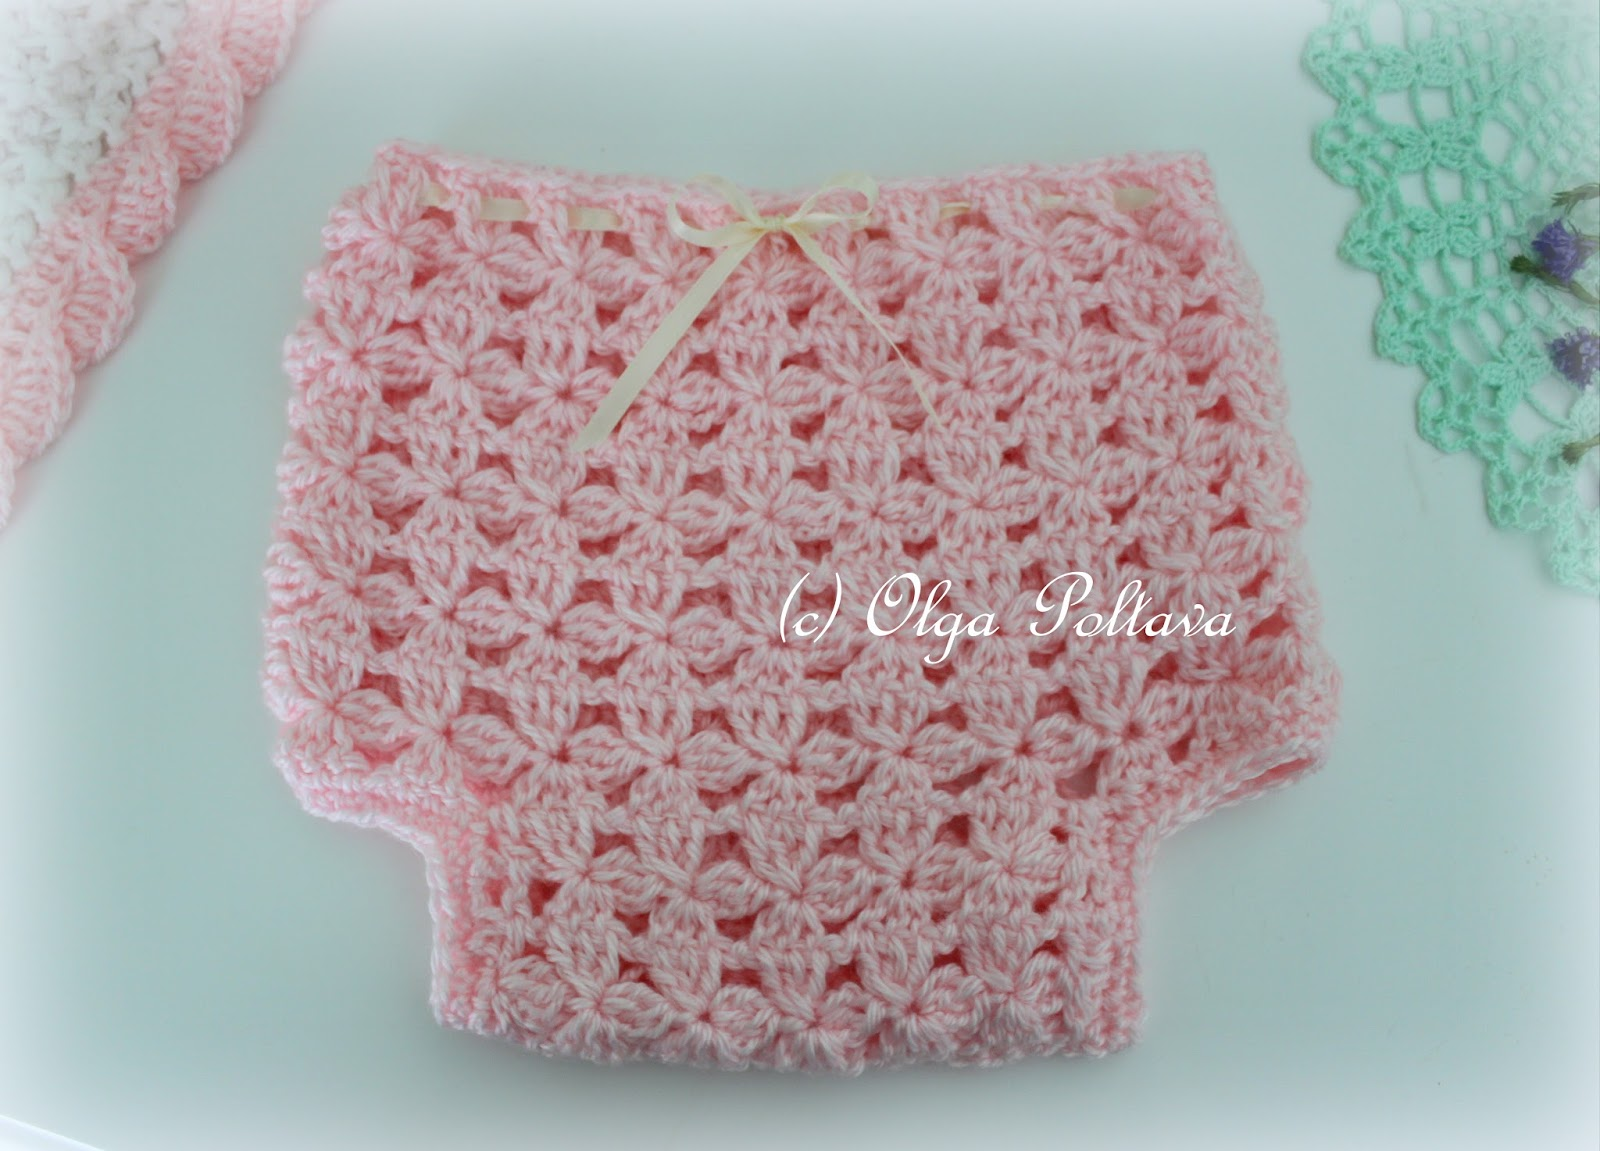 Lacy Crochet: Flower Clusters Diaper Cover